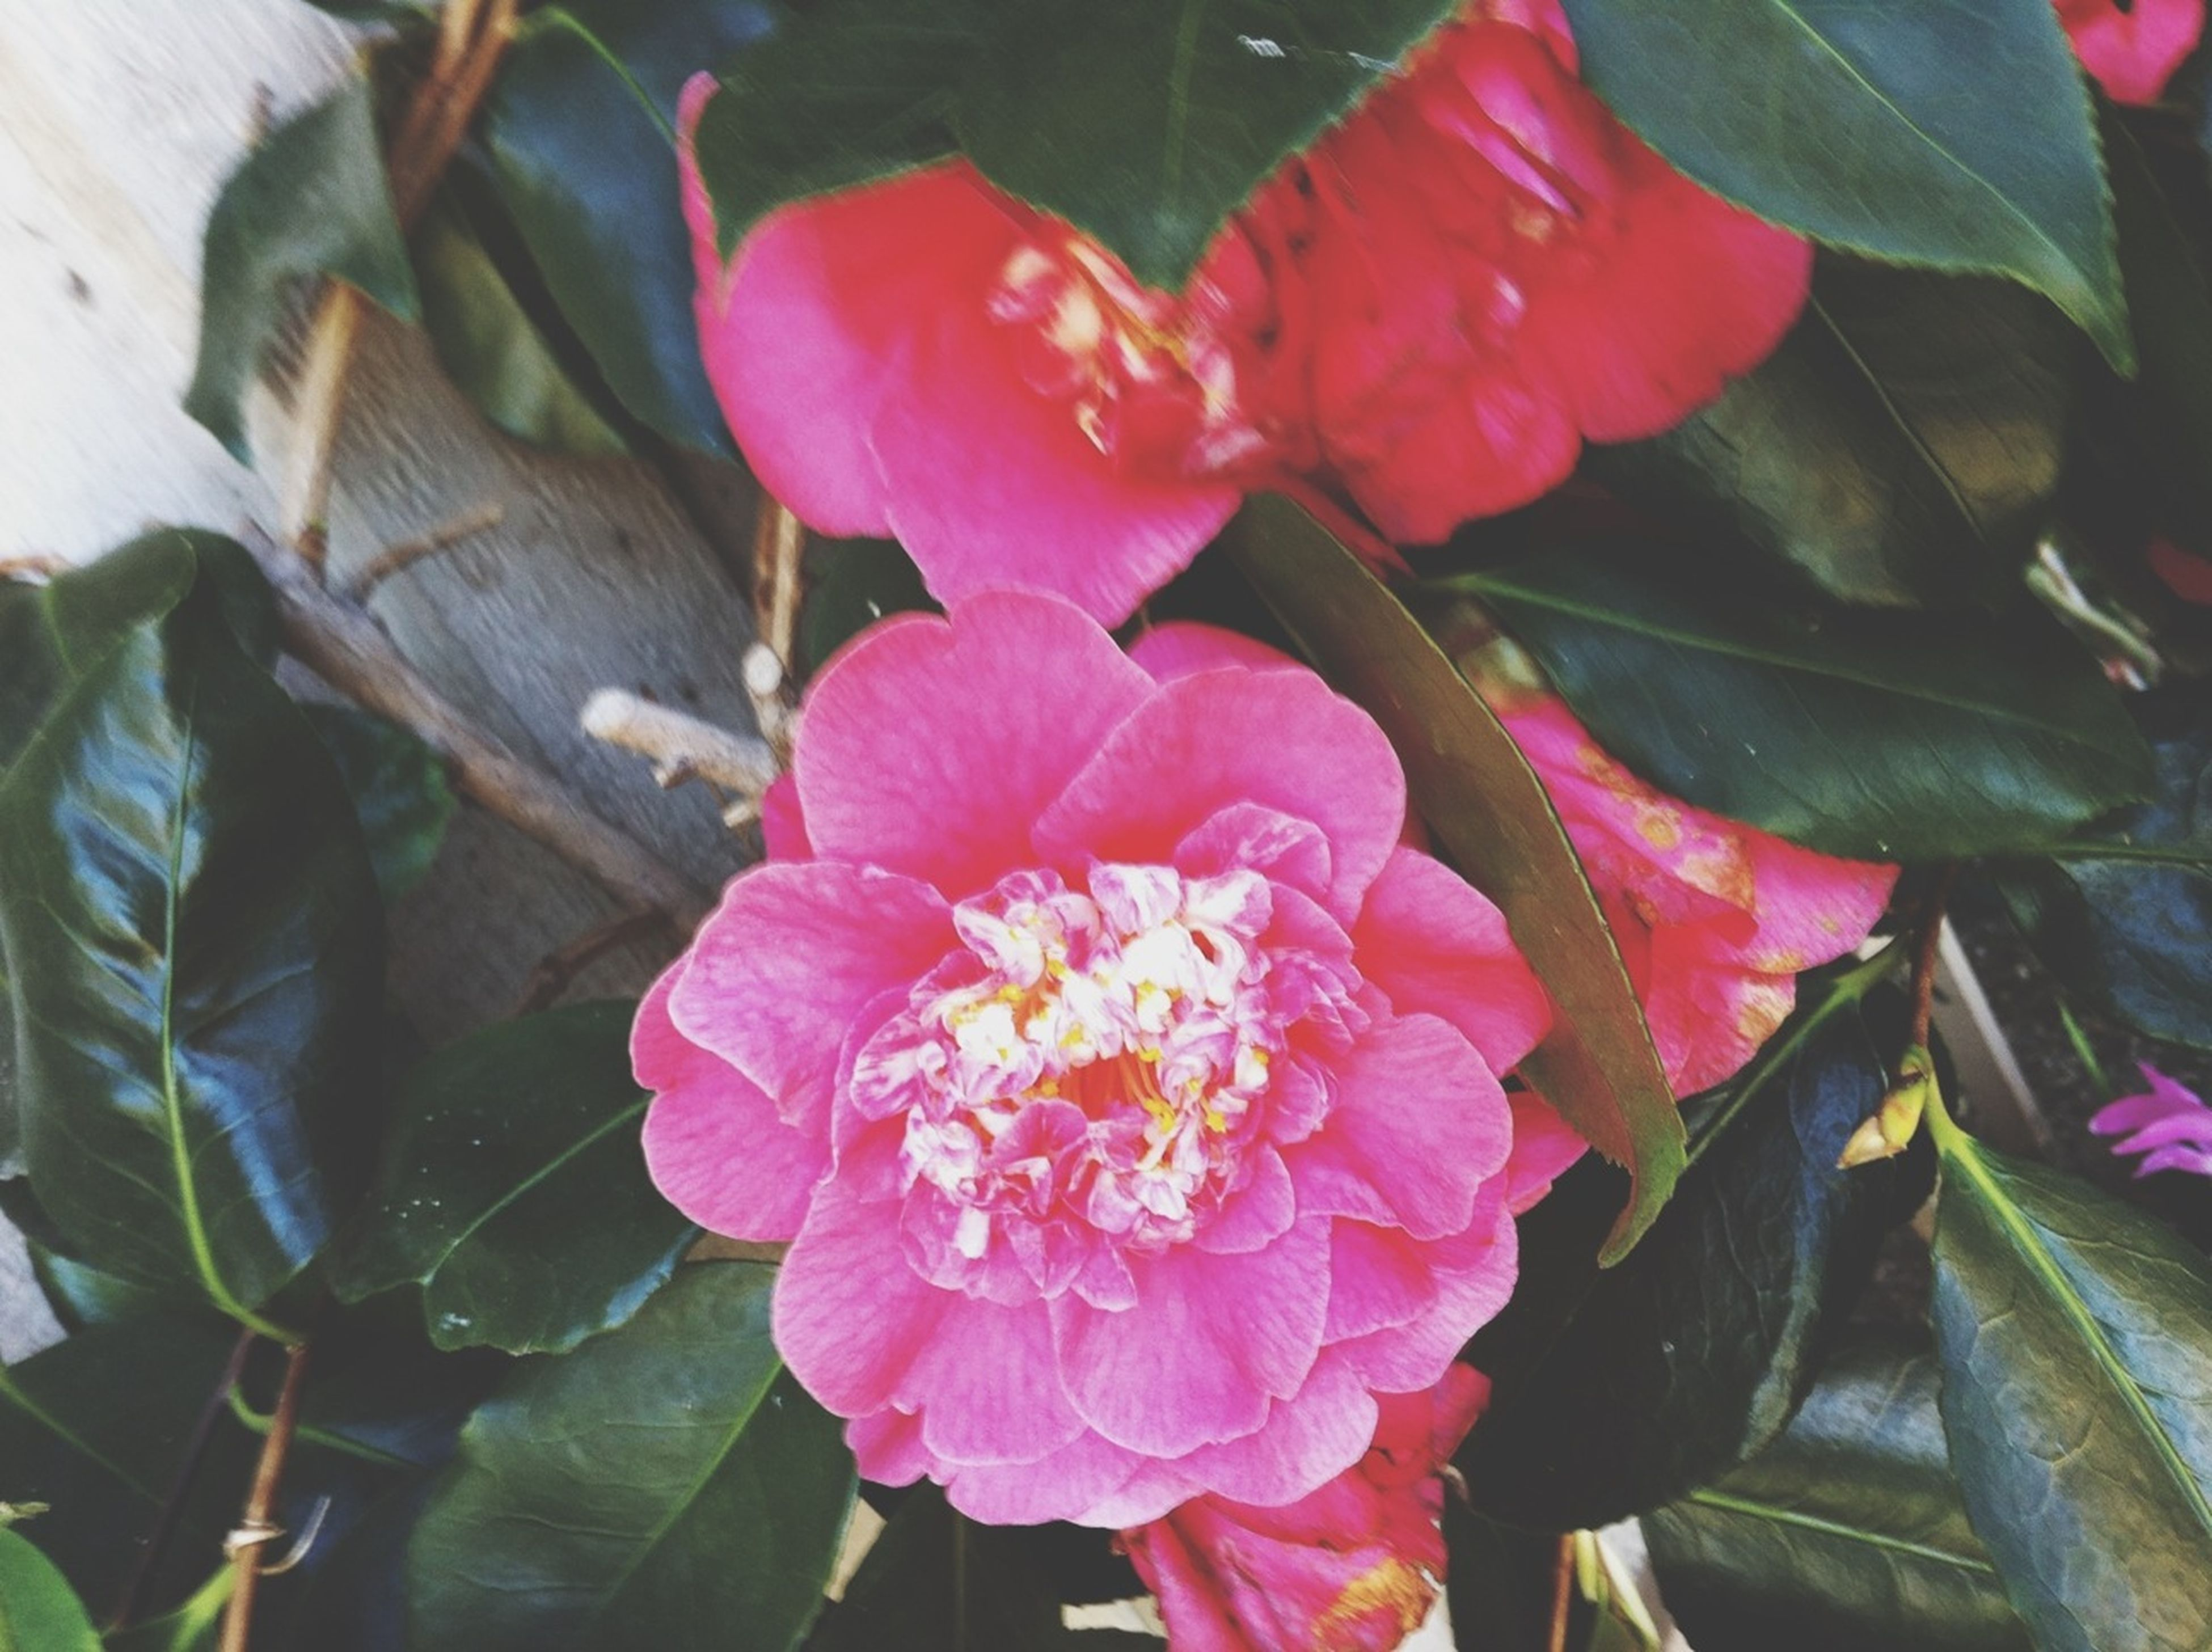 flower, petal, freshness, fragility, flower head, pink color, growth, leaf, beauty in nature, blooming, plant, nature, close-up, high angle view, pollen, in bloom, pink, park - man made space, outdoors, day